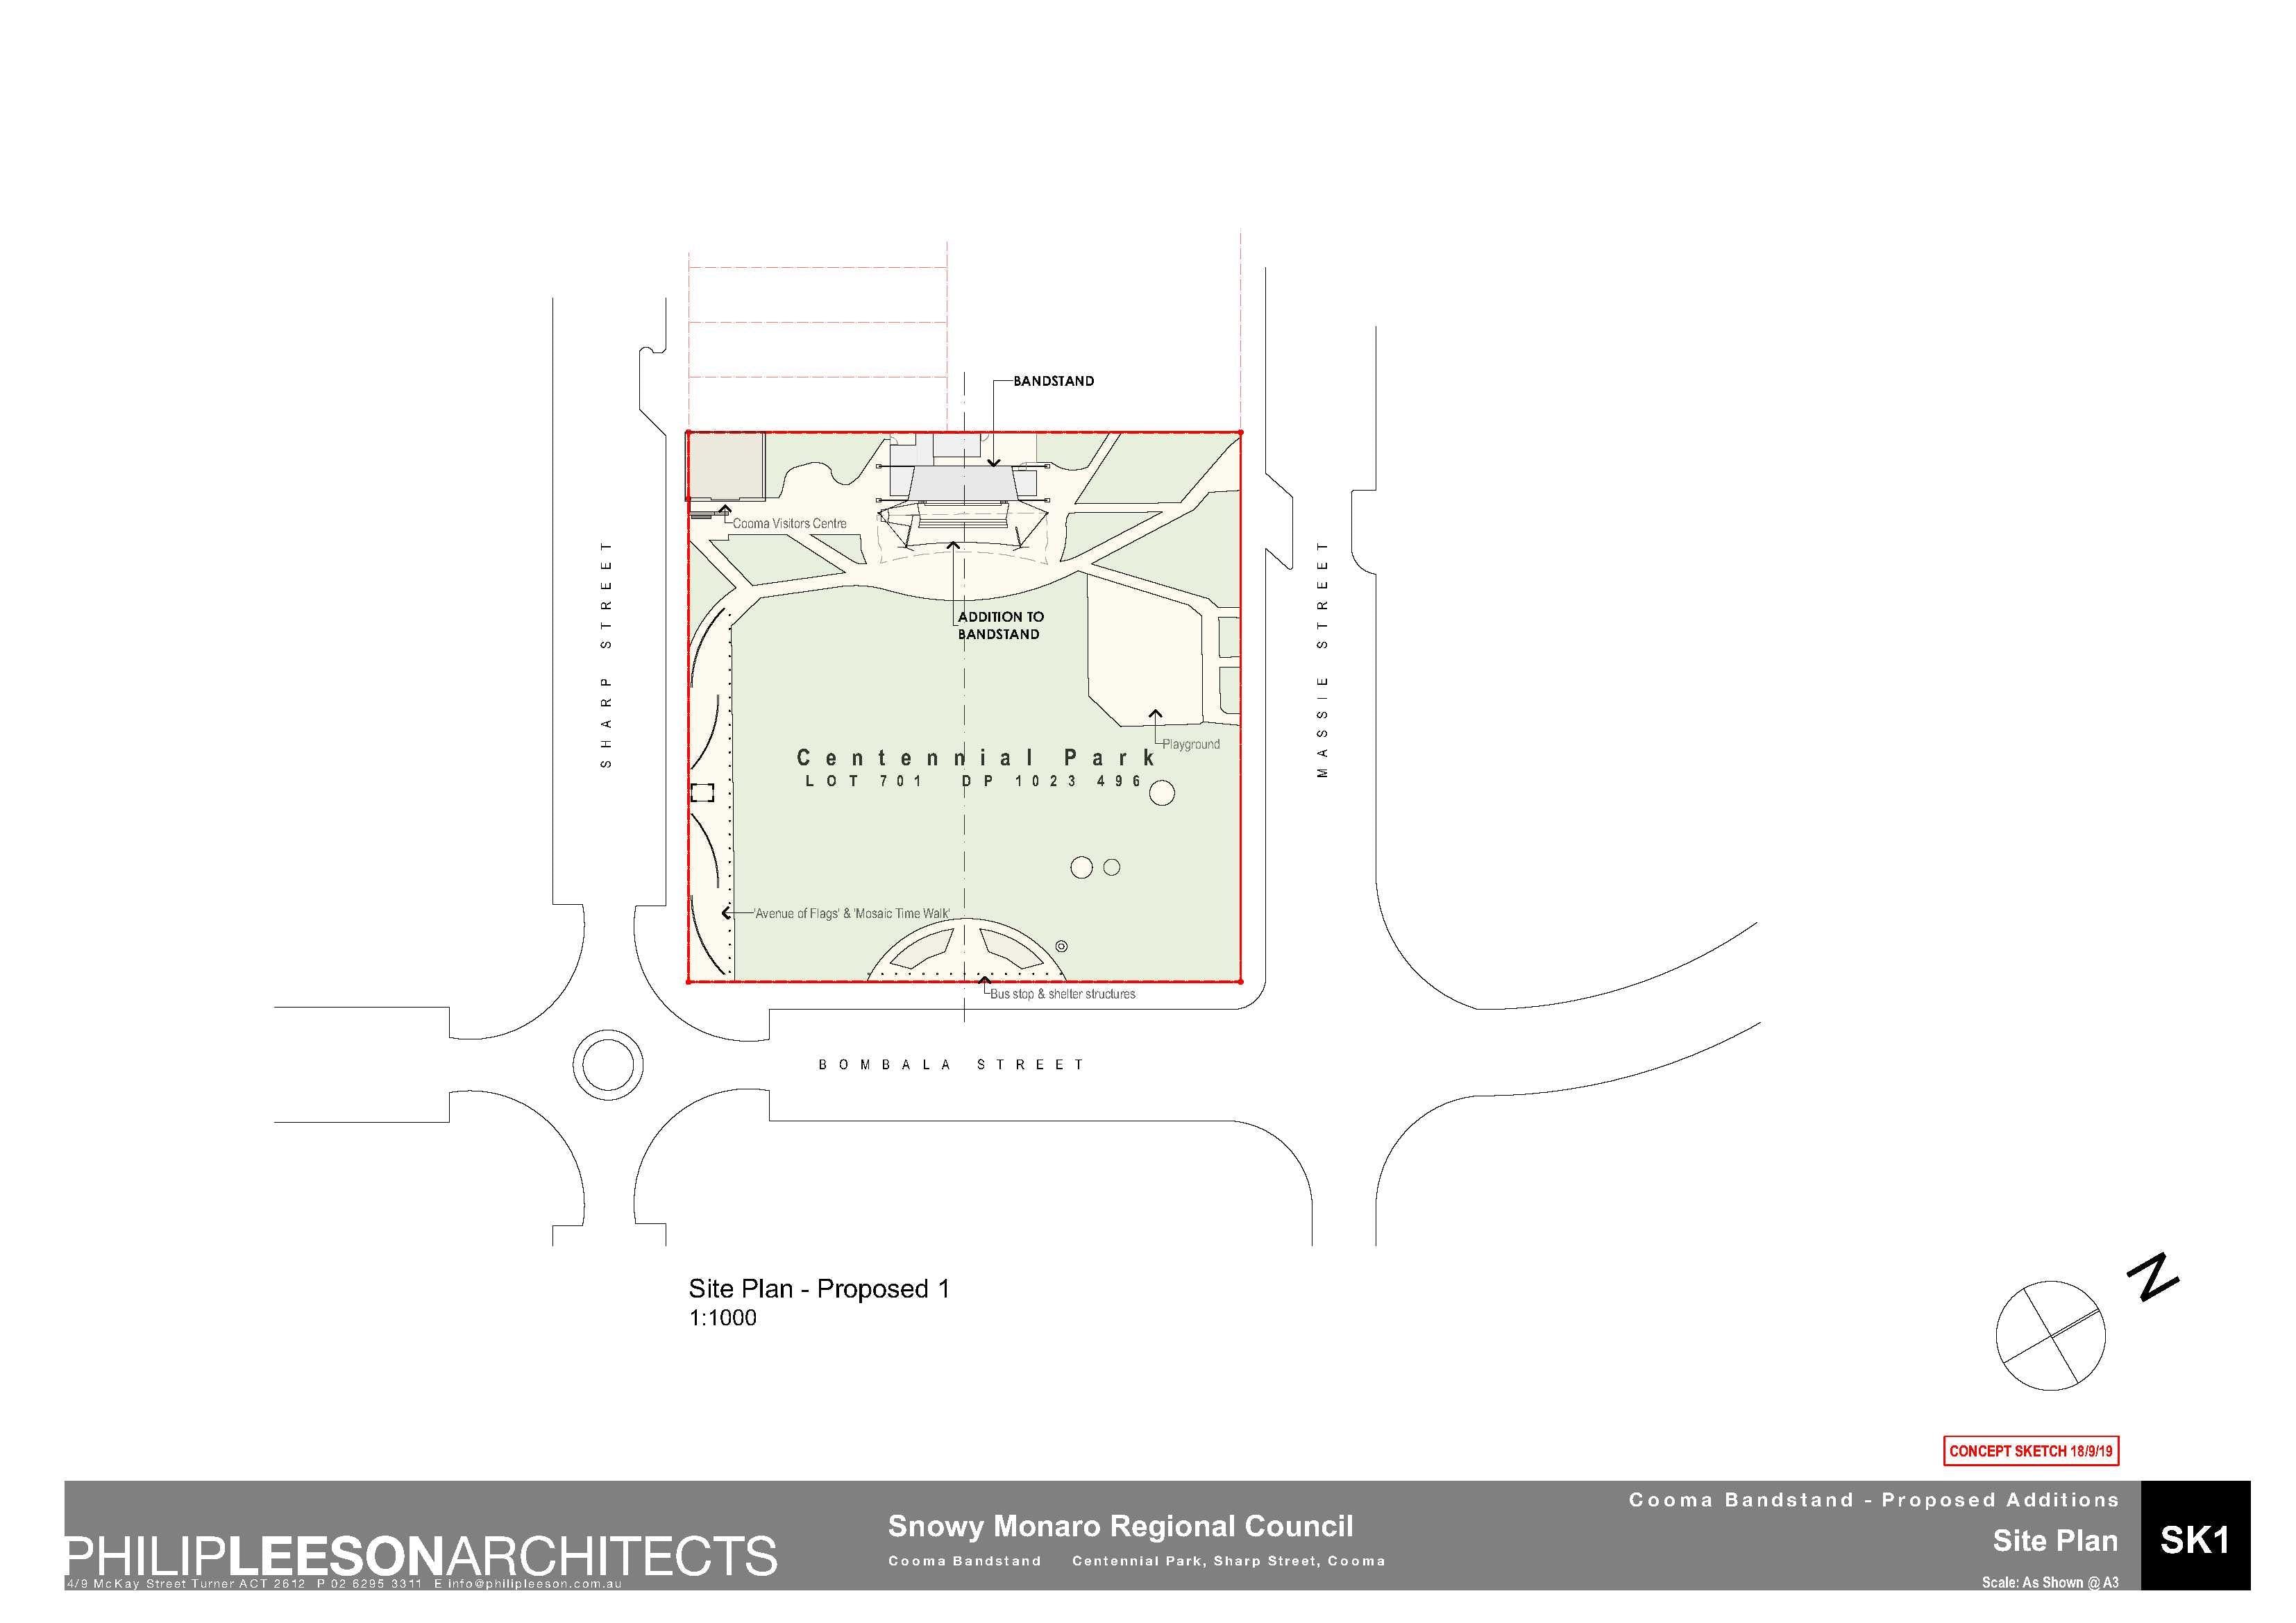 Cooma Bandstand - Proposed Additions_190918 Concept Sketch_1